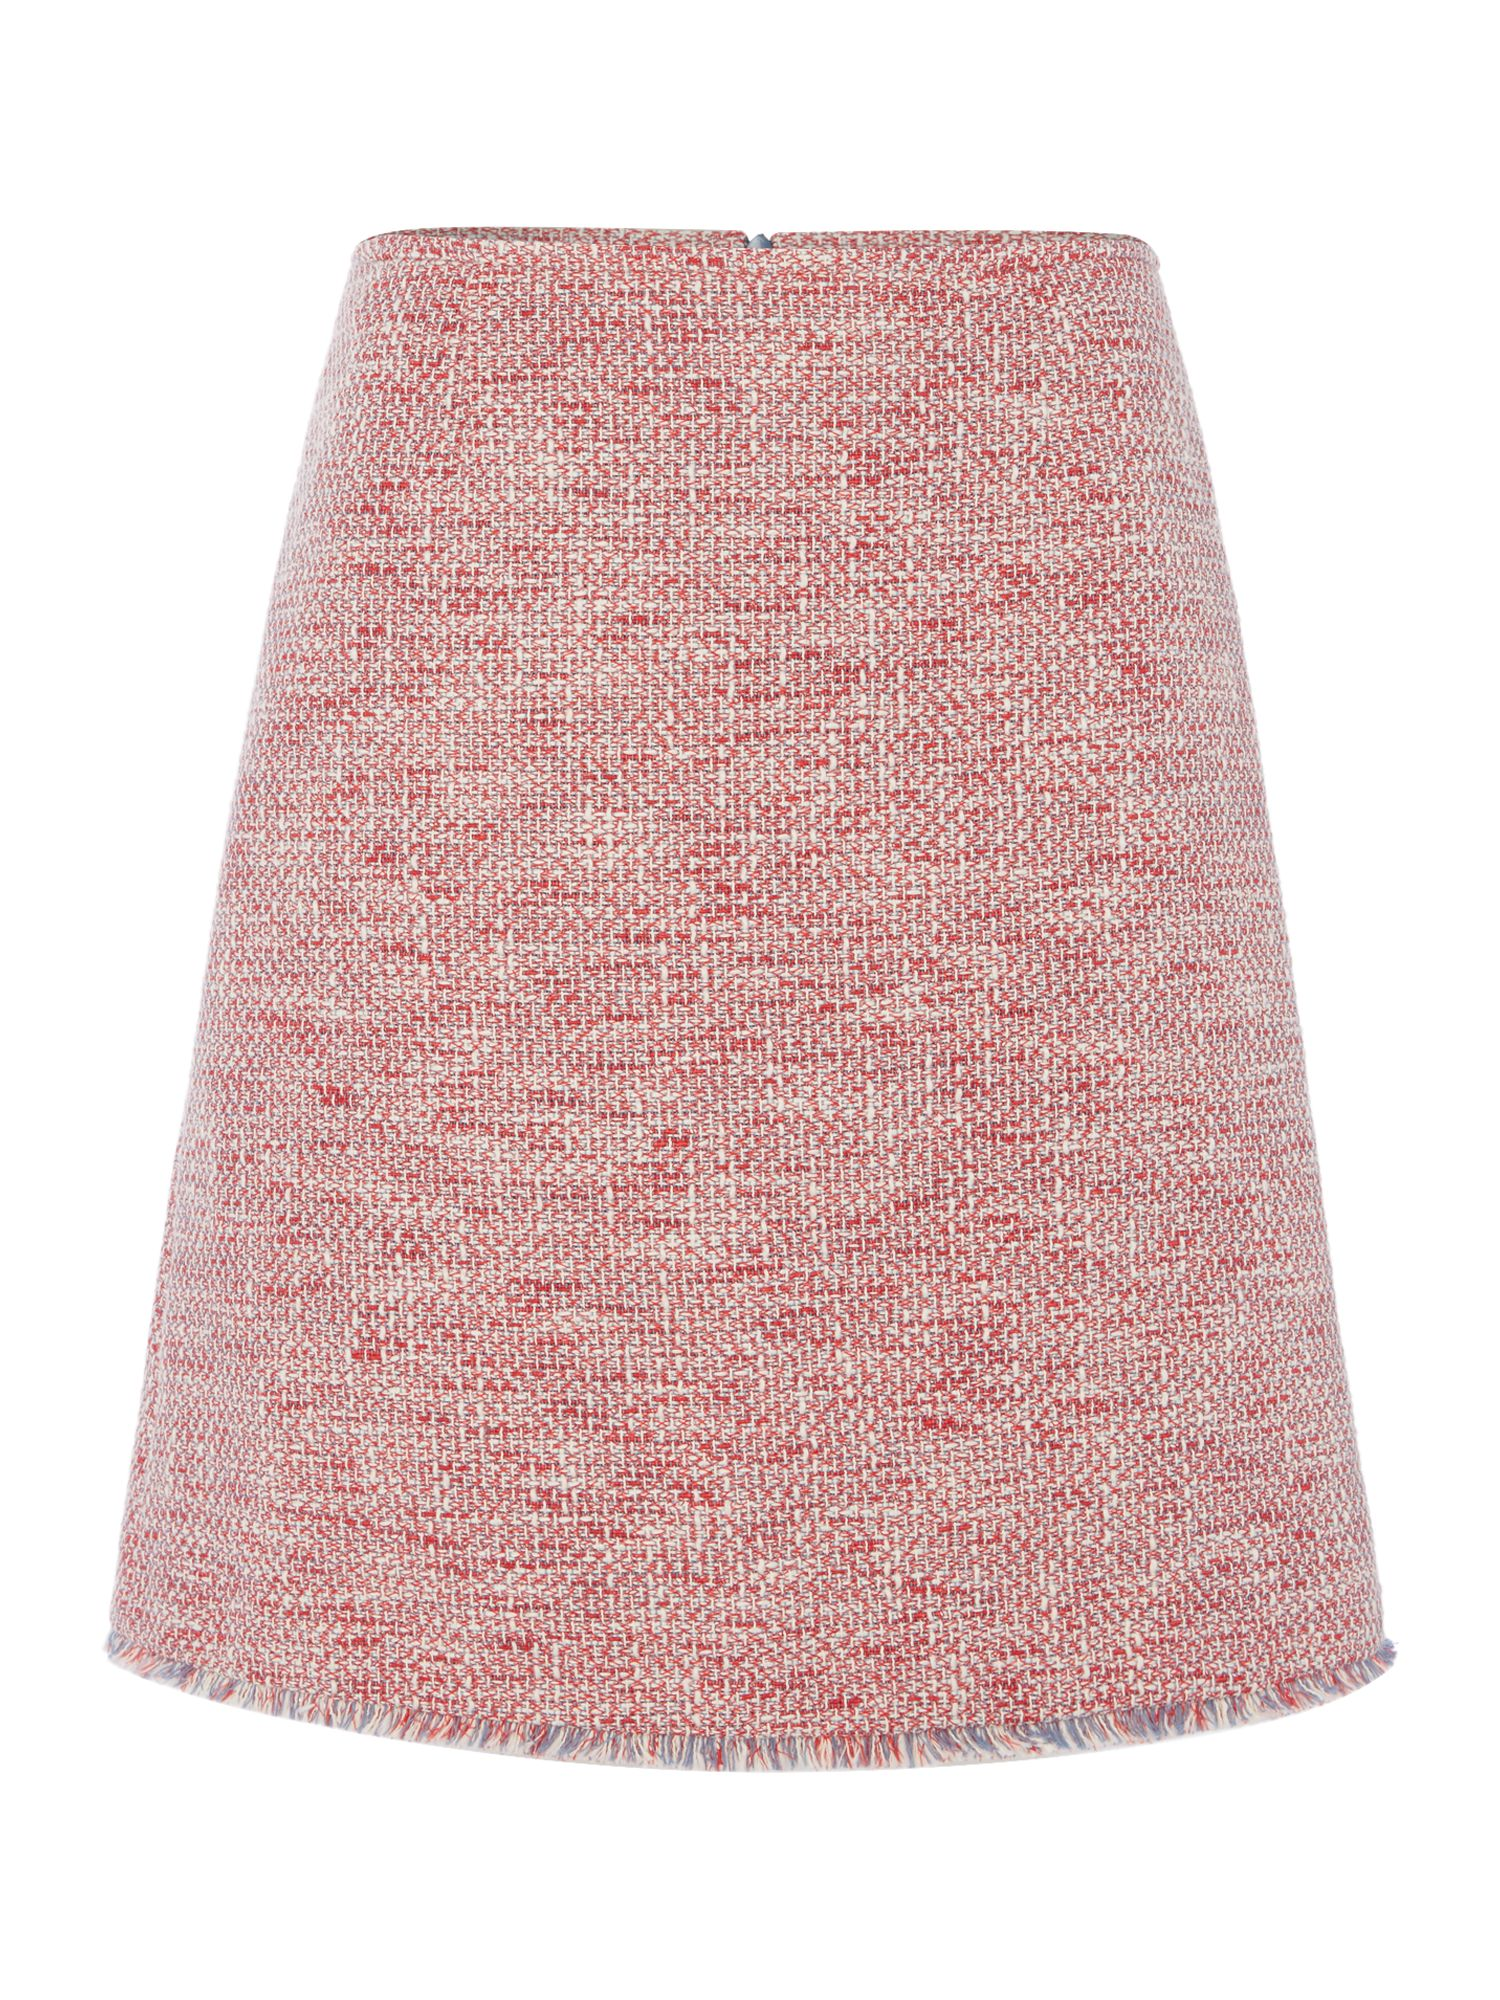 Hugo Textured a line skirt, Multi-Coloured